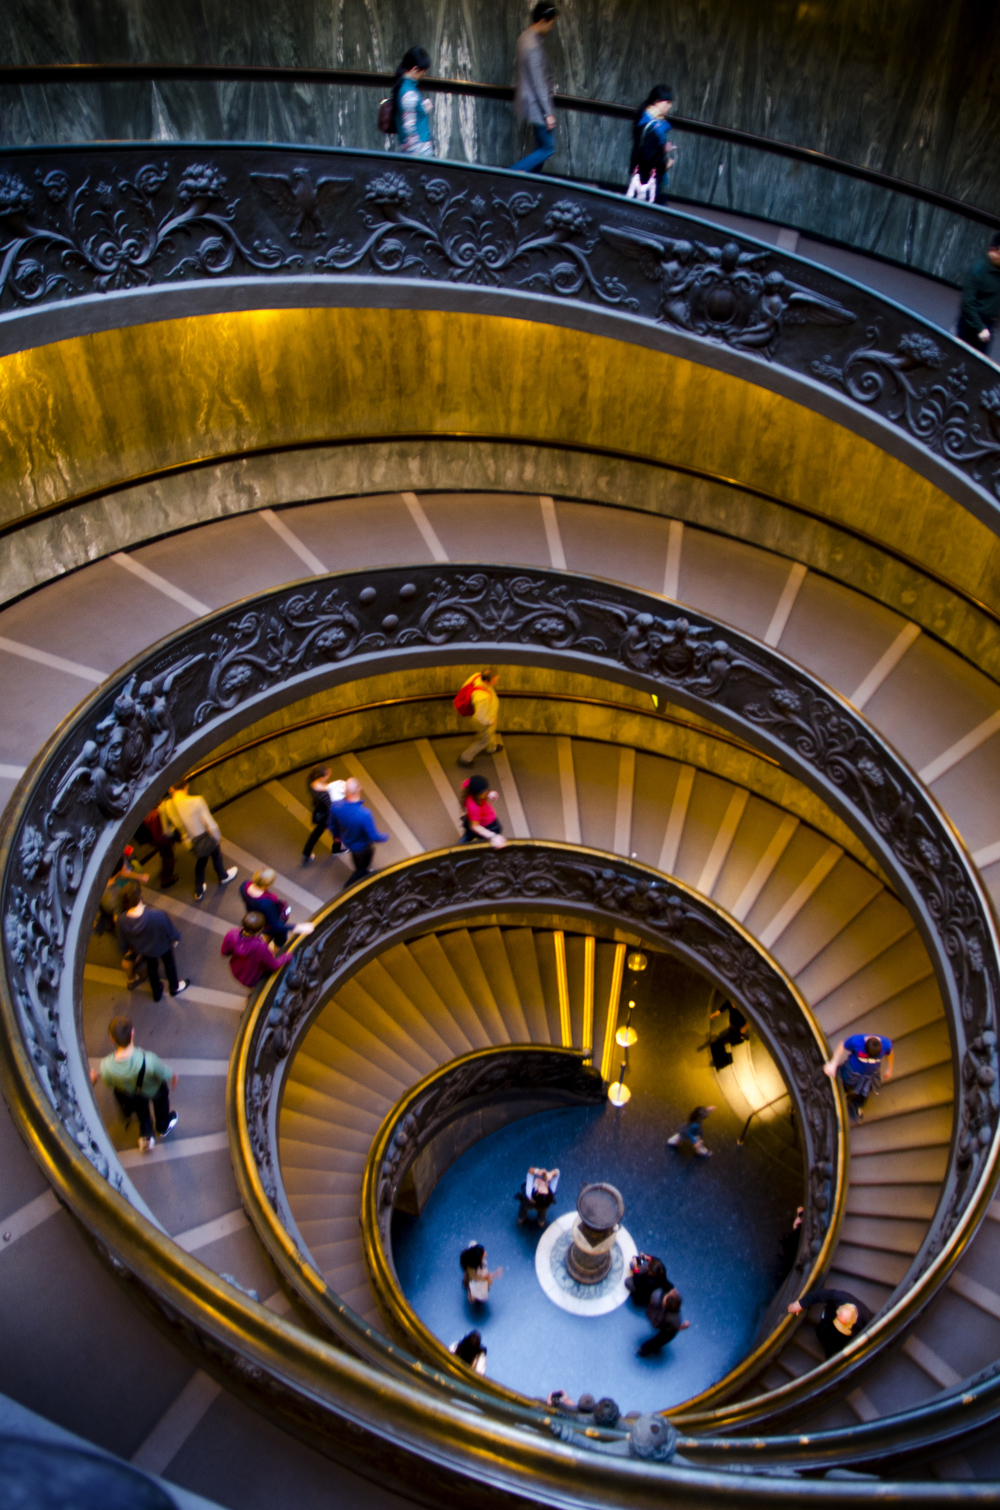 This winding path leads to the exit of the Vatican Museums, spiraling downwards on a shallow slope, causing patrons to tread carefully on the steps.